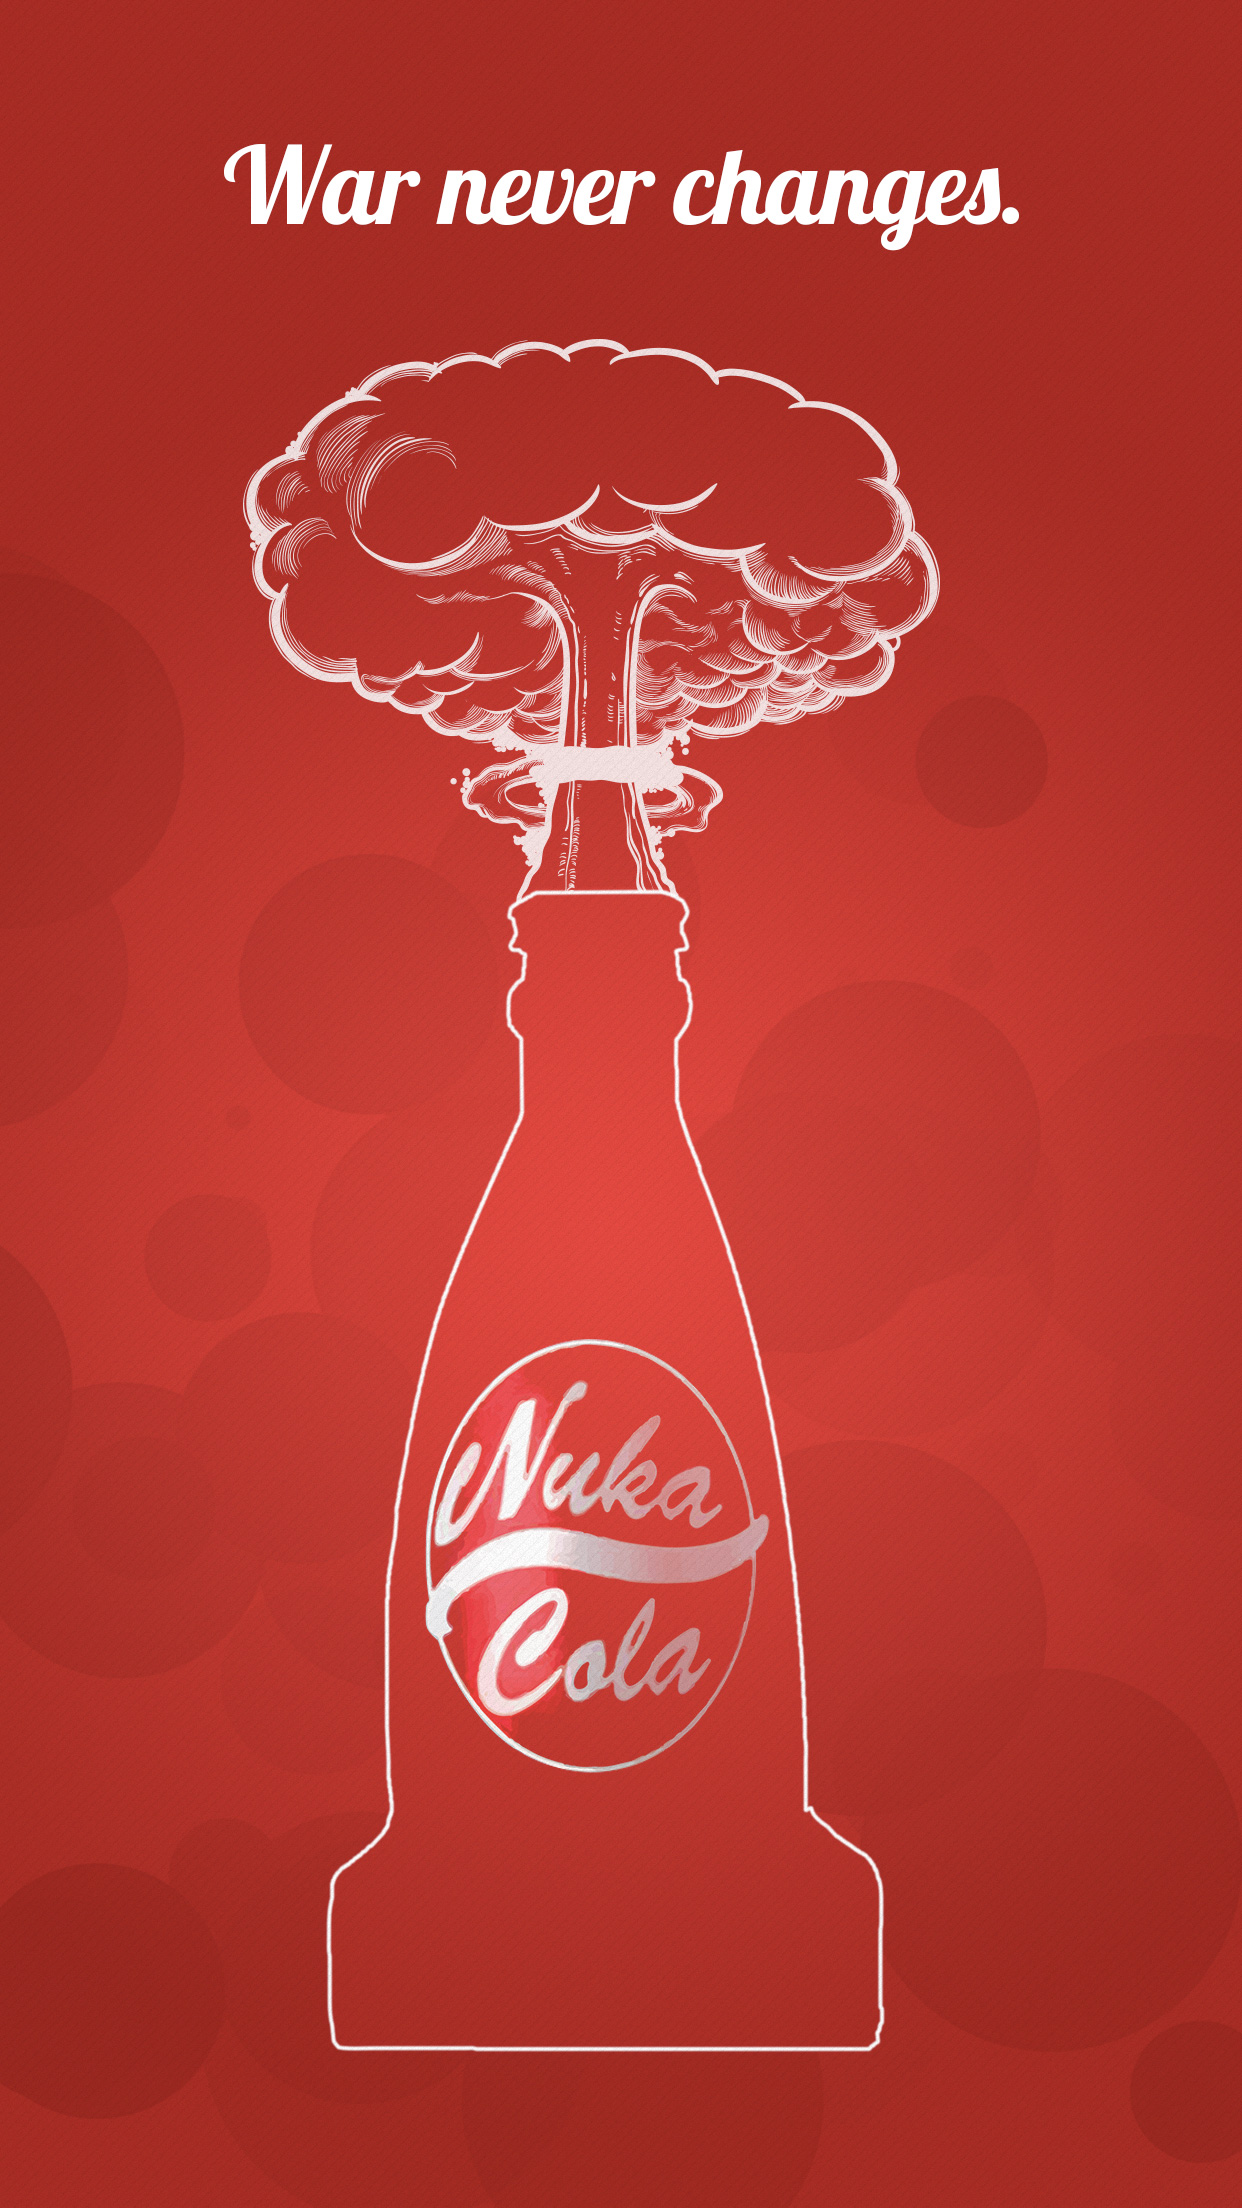 Fallout 4 Nuka Cola Wallpapers - Mobile and Desktop Versions ...